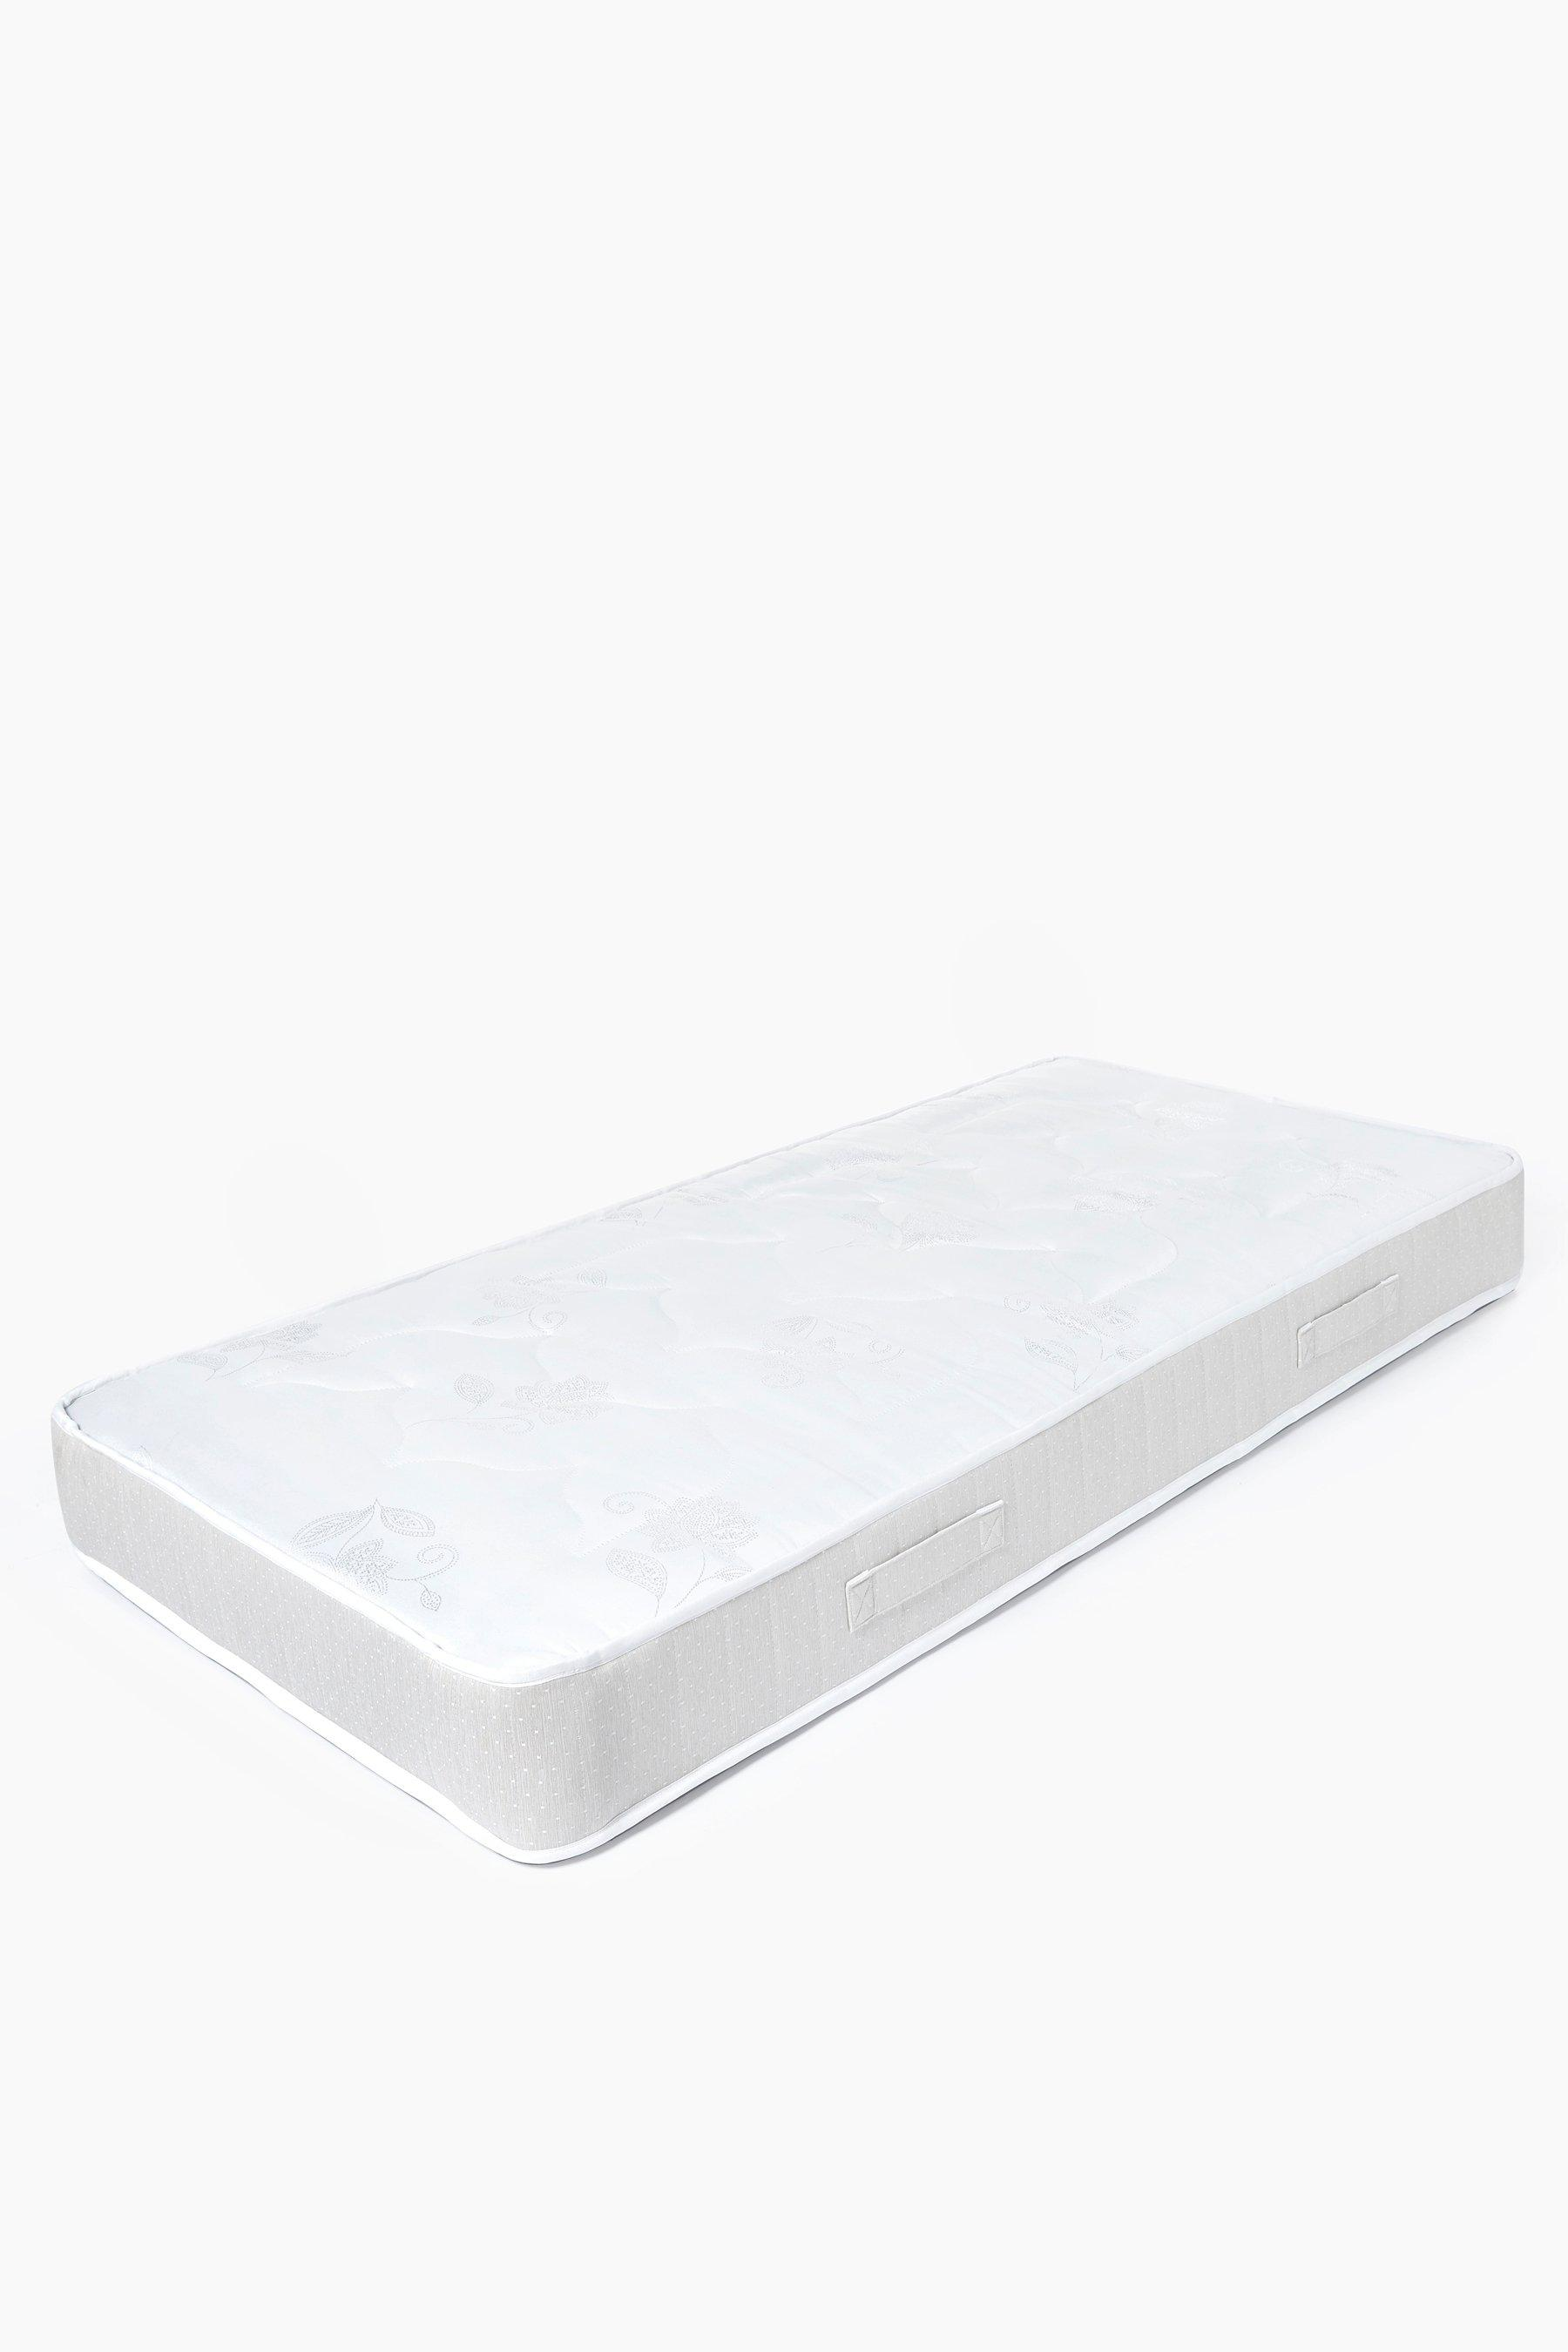 Compare prices for Airsprung 800 Pocket Mattress